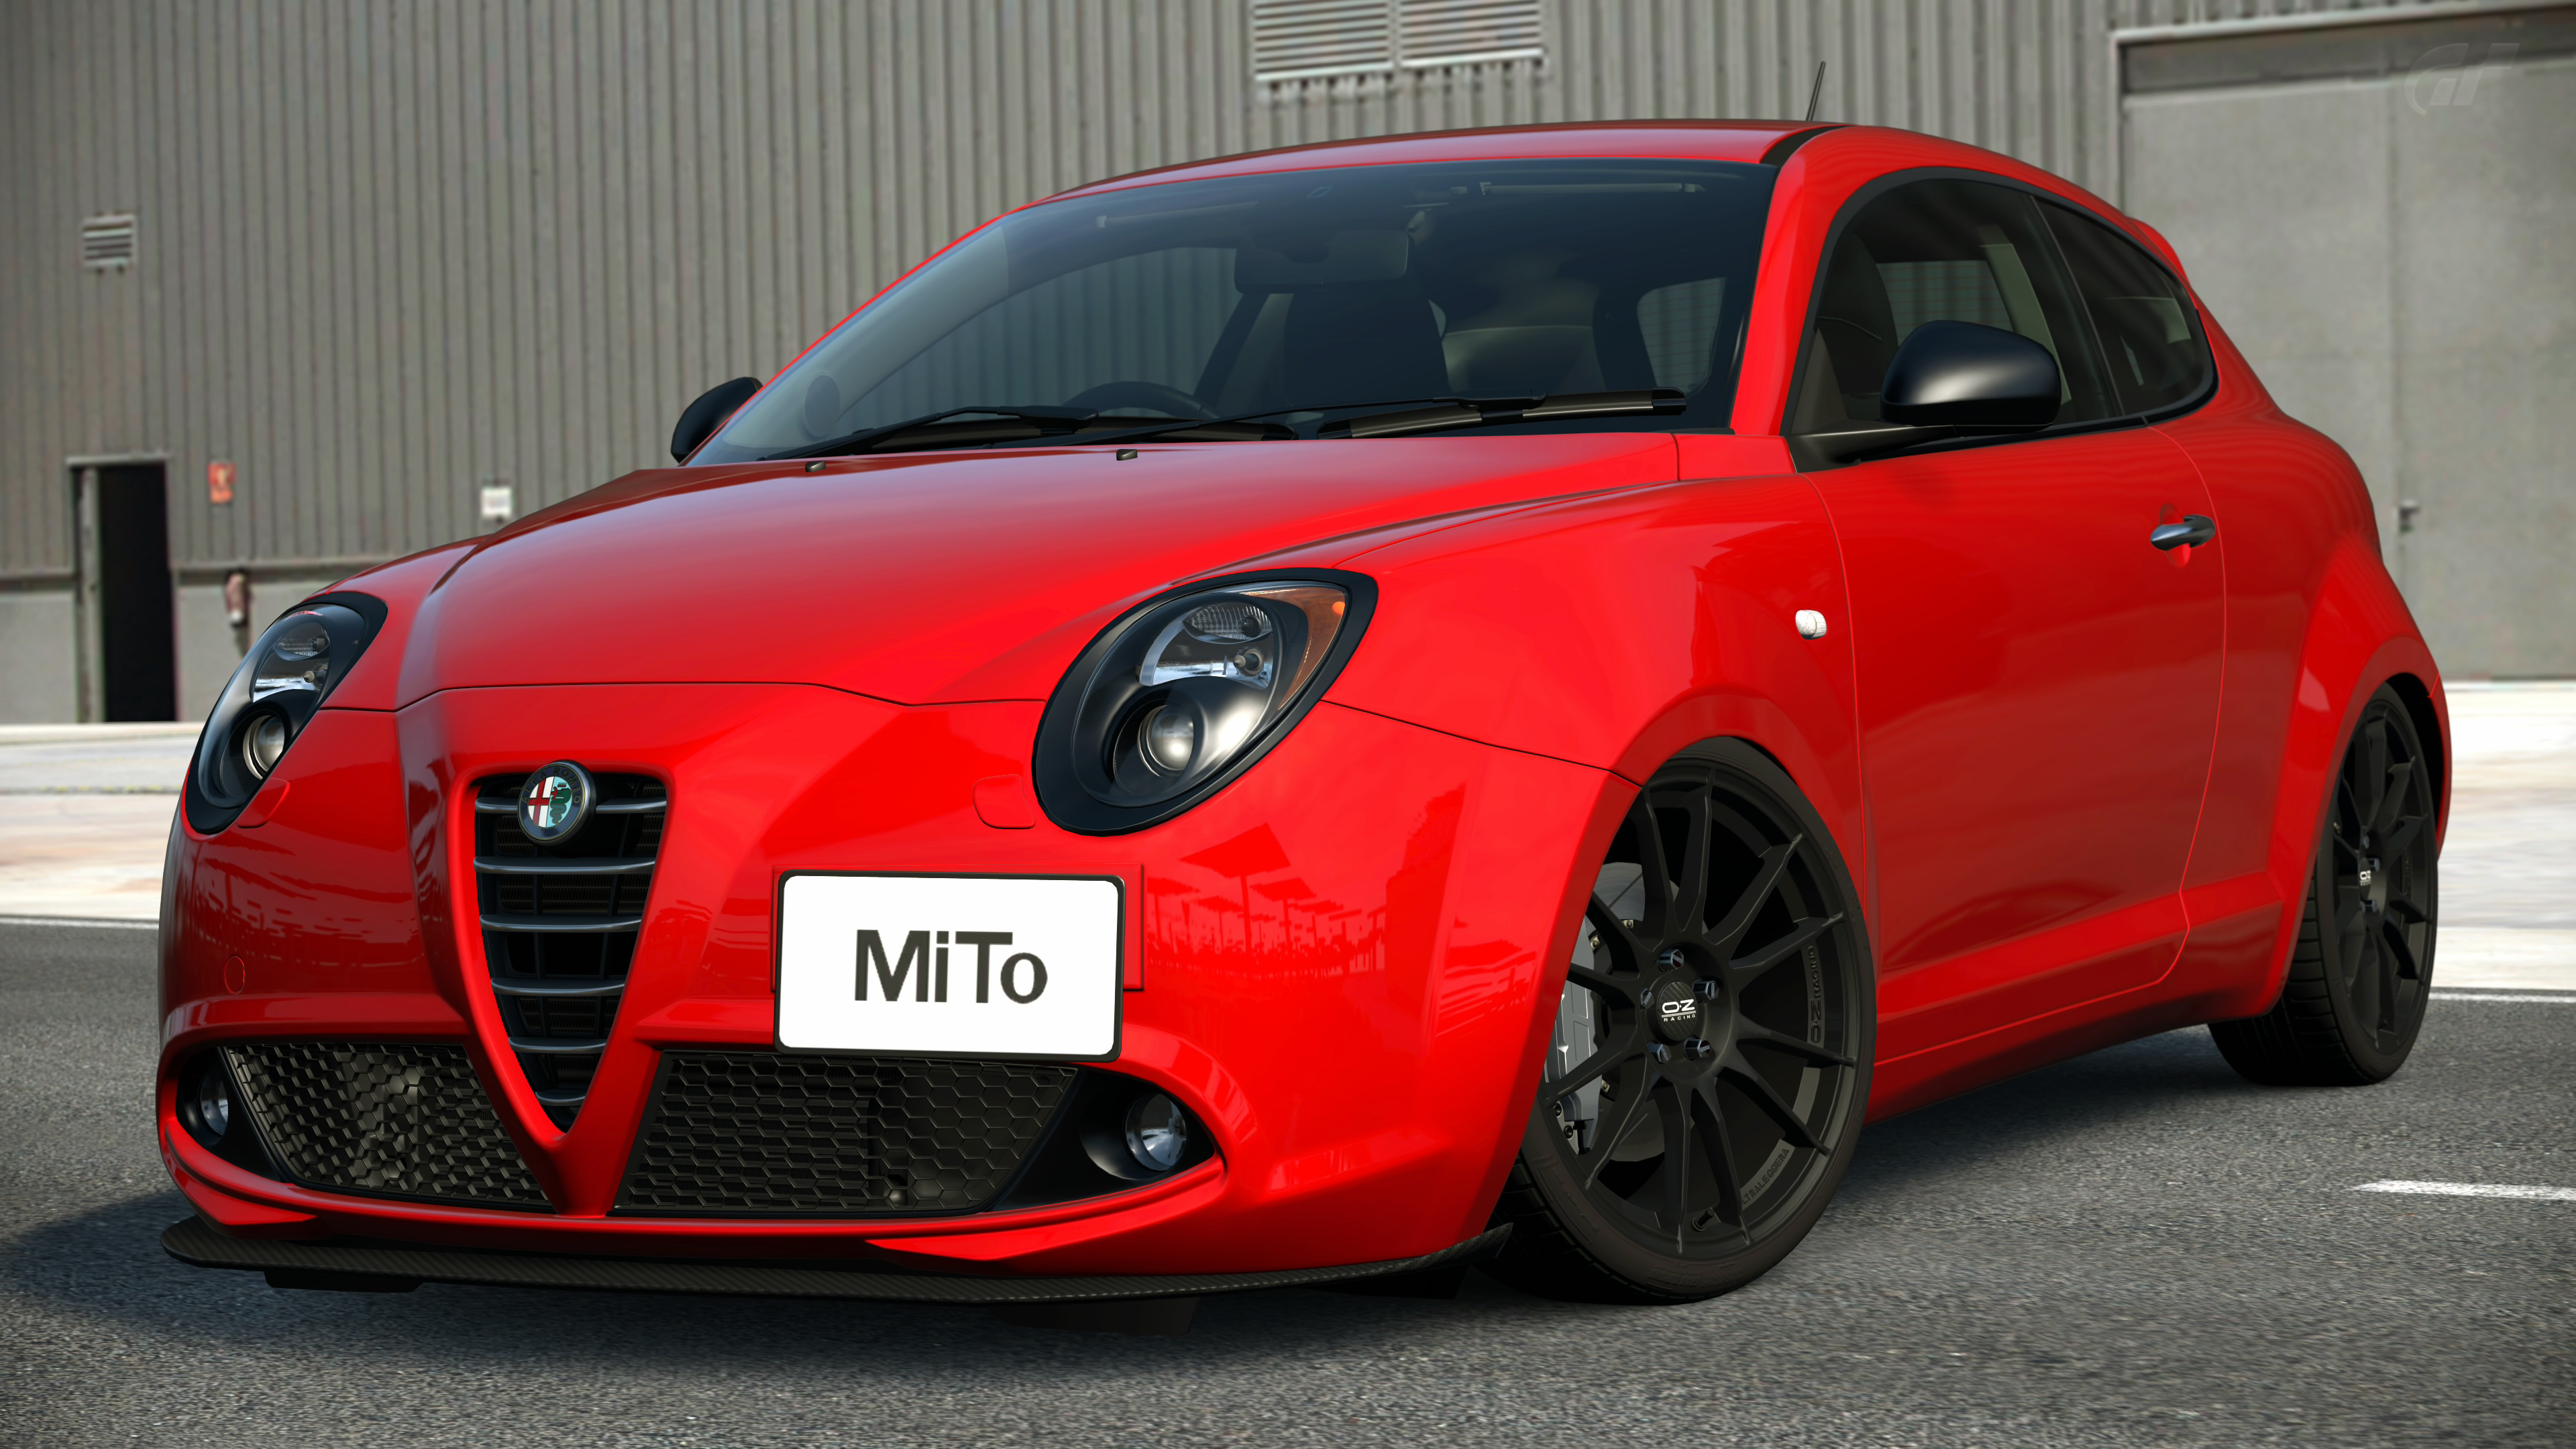 alfa romeo mito 1 4t sport gran turismo 6 by vertualissimo on deviantart. Black Bedroom Furniture Sets. Home Design Ideas